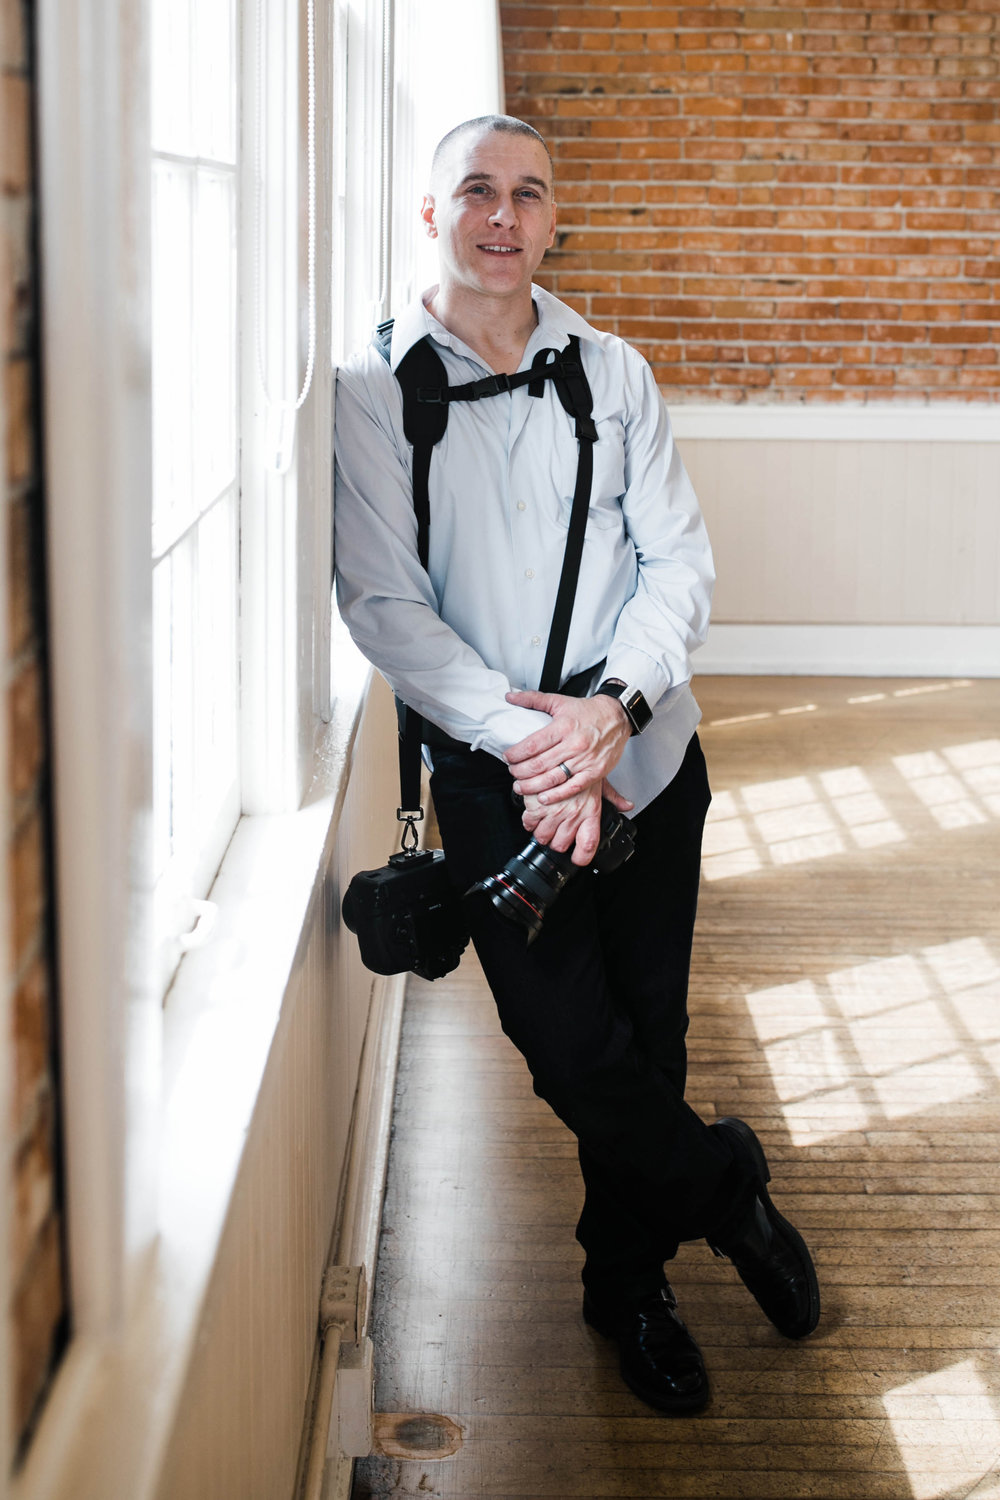 Seattle_Event_photographer_Hollywood_Schoolhouse_wedding_Adina_Preston_Weddings_Jared.JPG